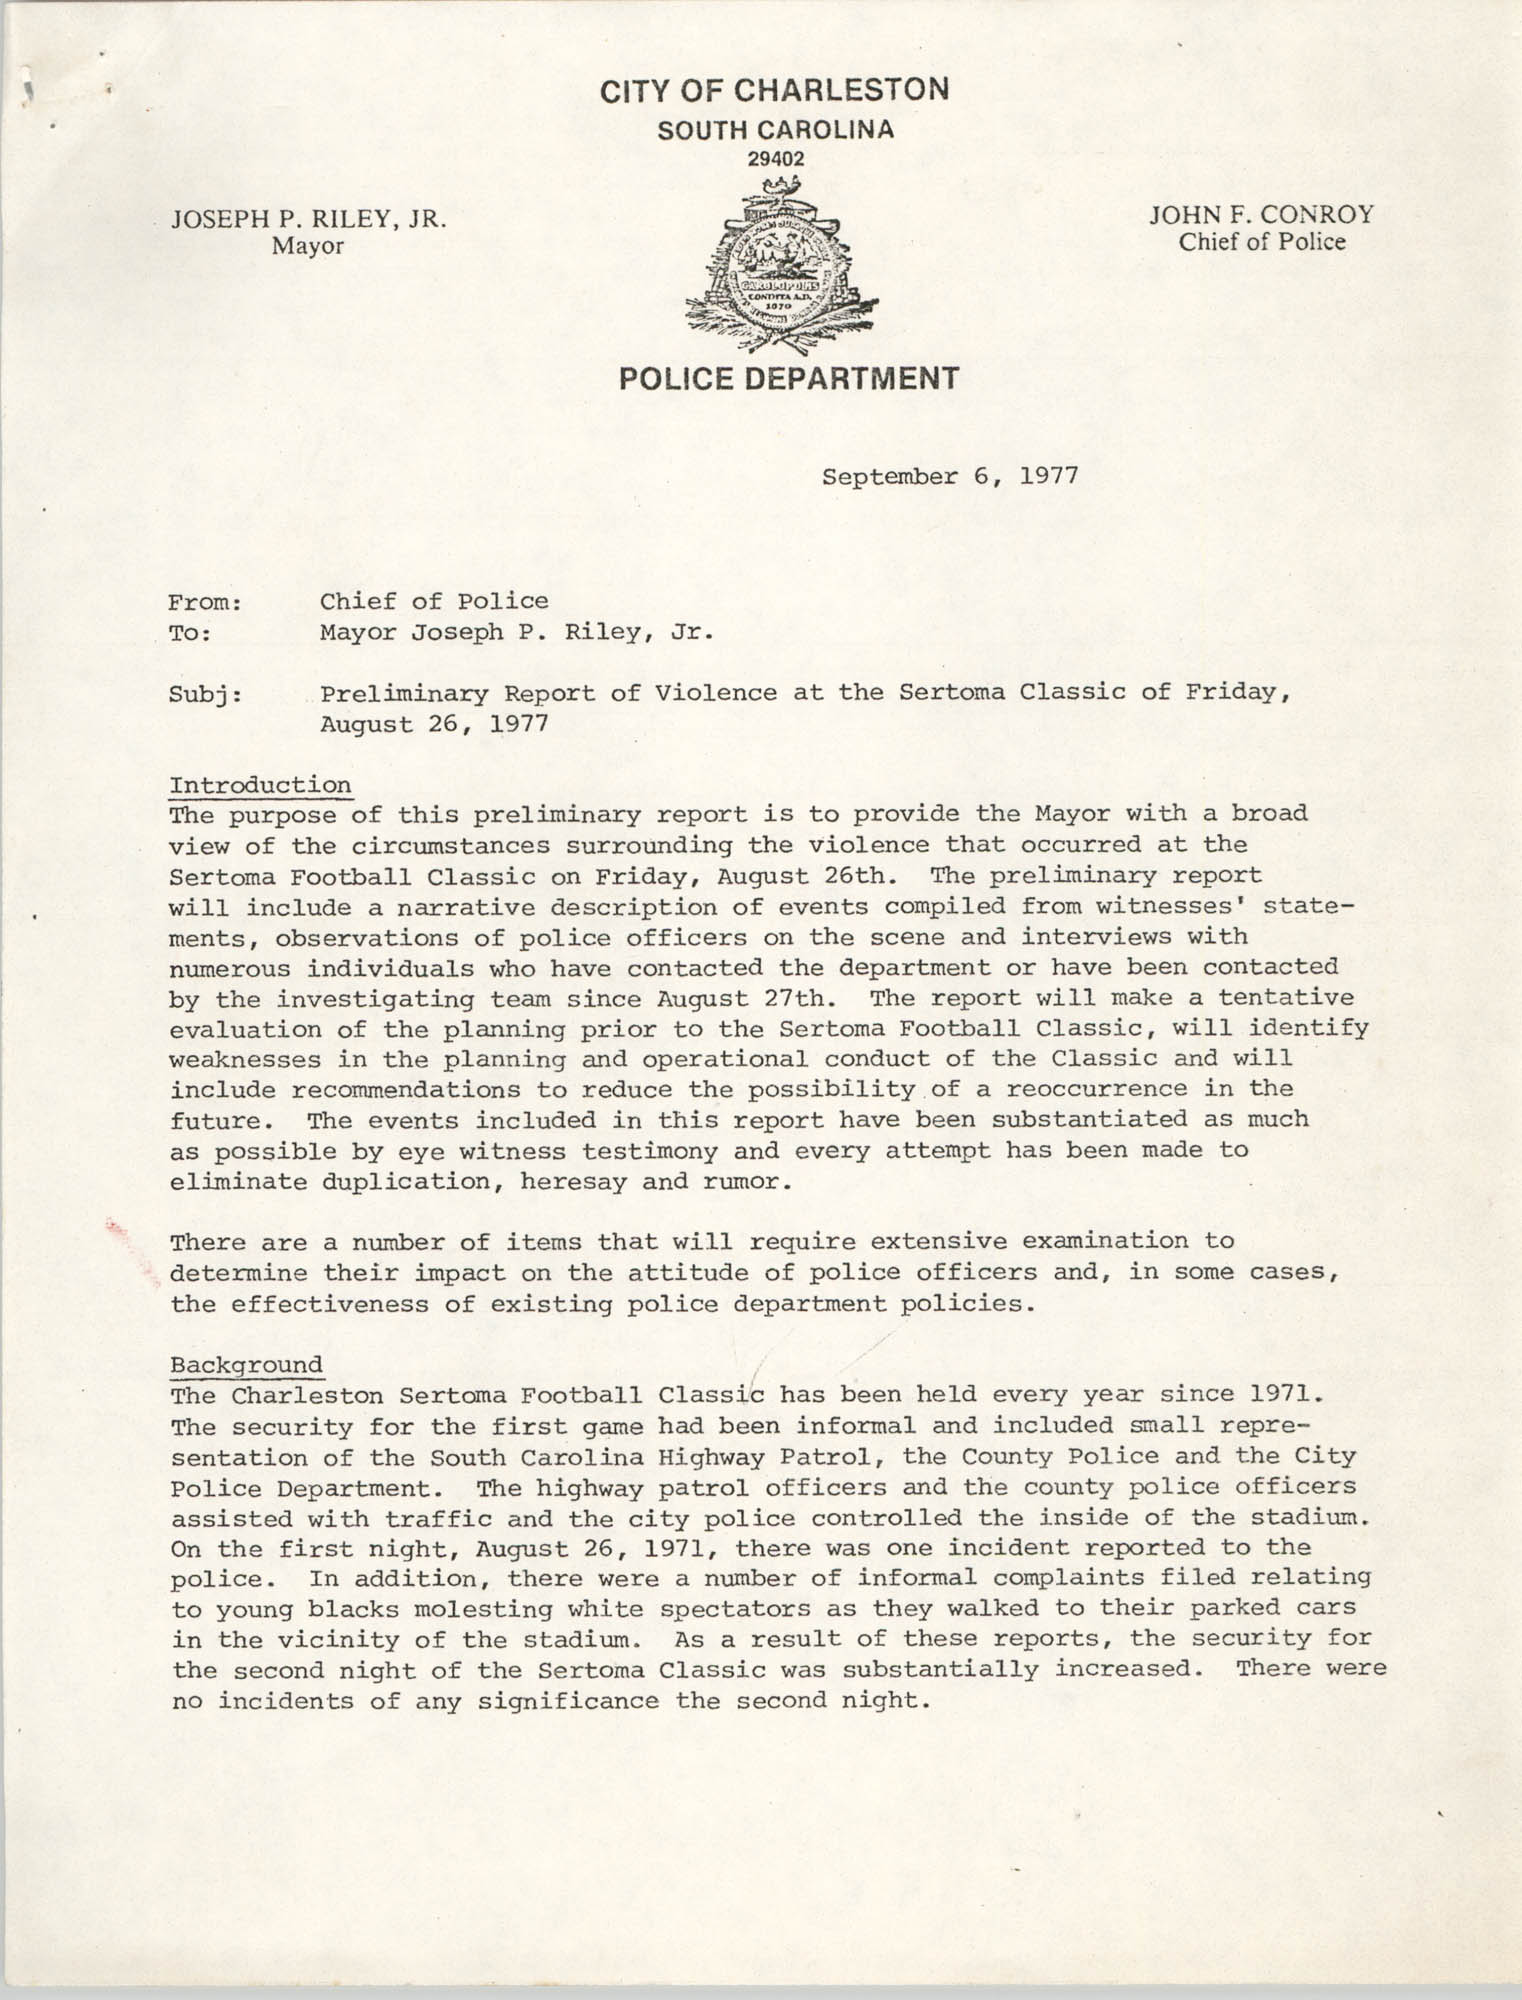 Letter from John F. Conroy to Mayor Joseph P. Riley, Jr., September 6, 1977